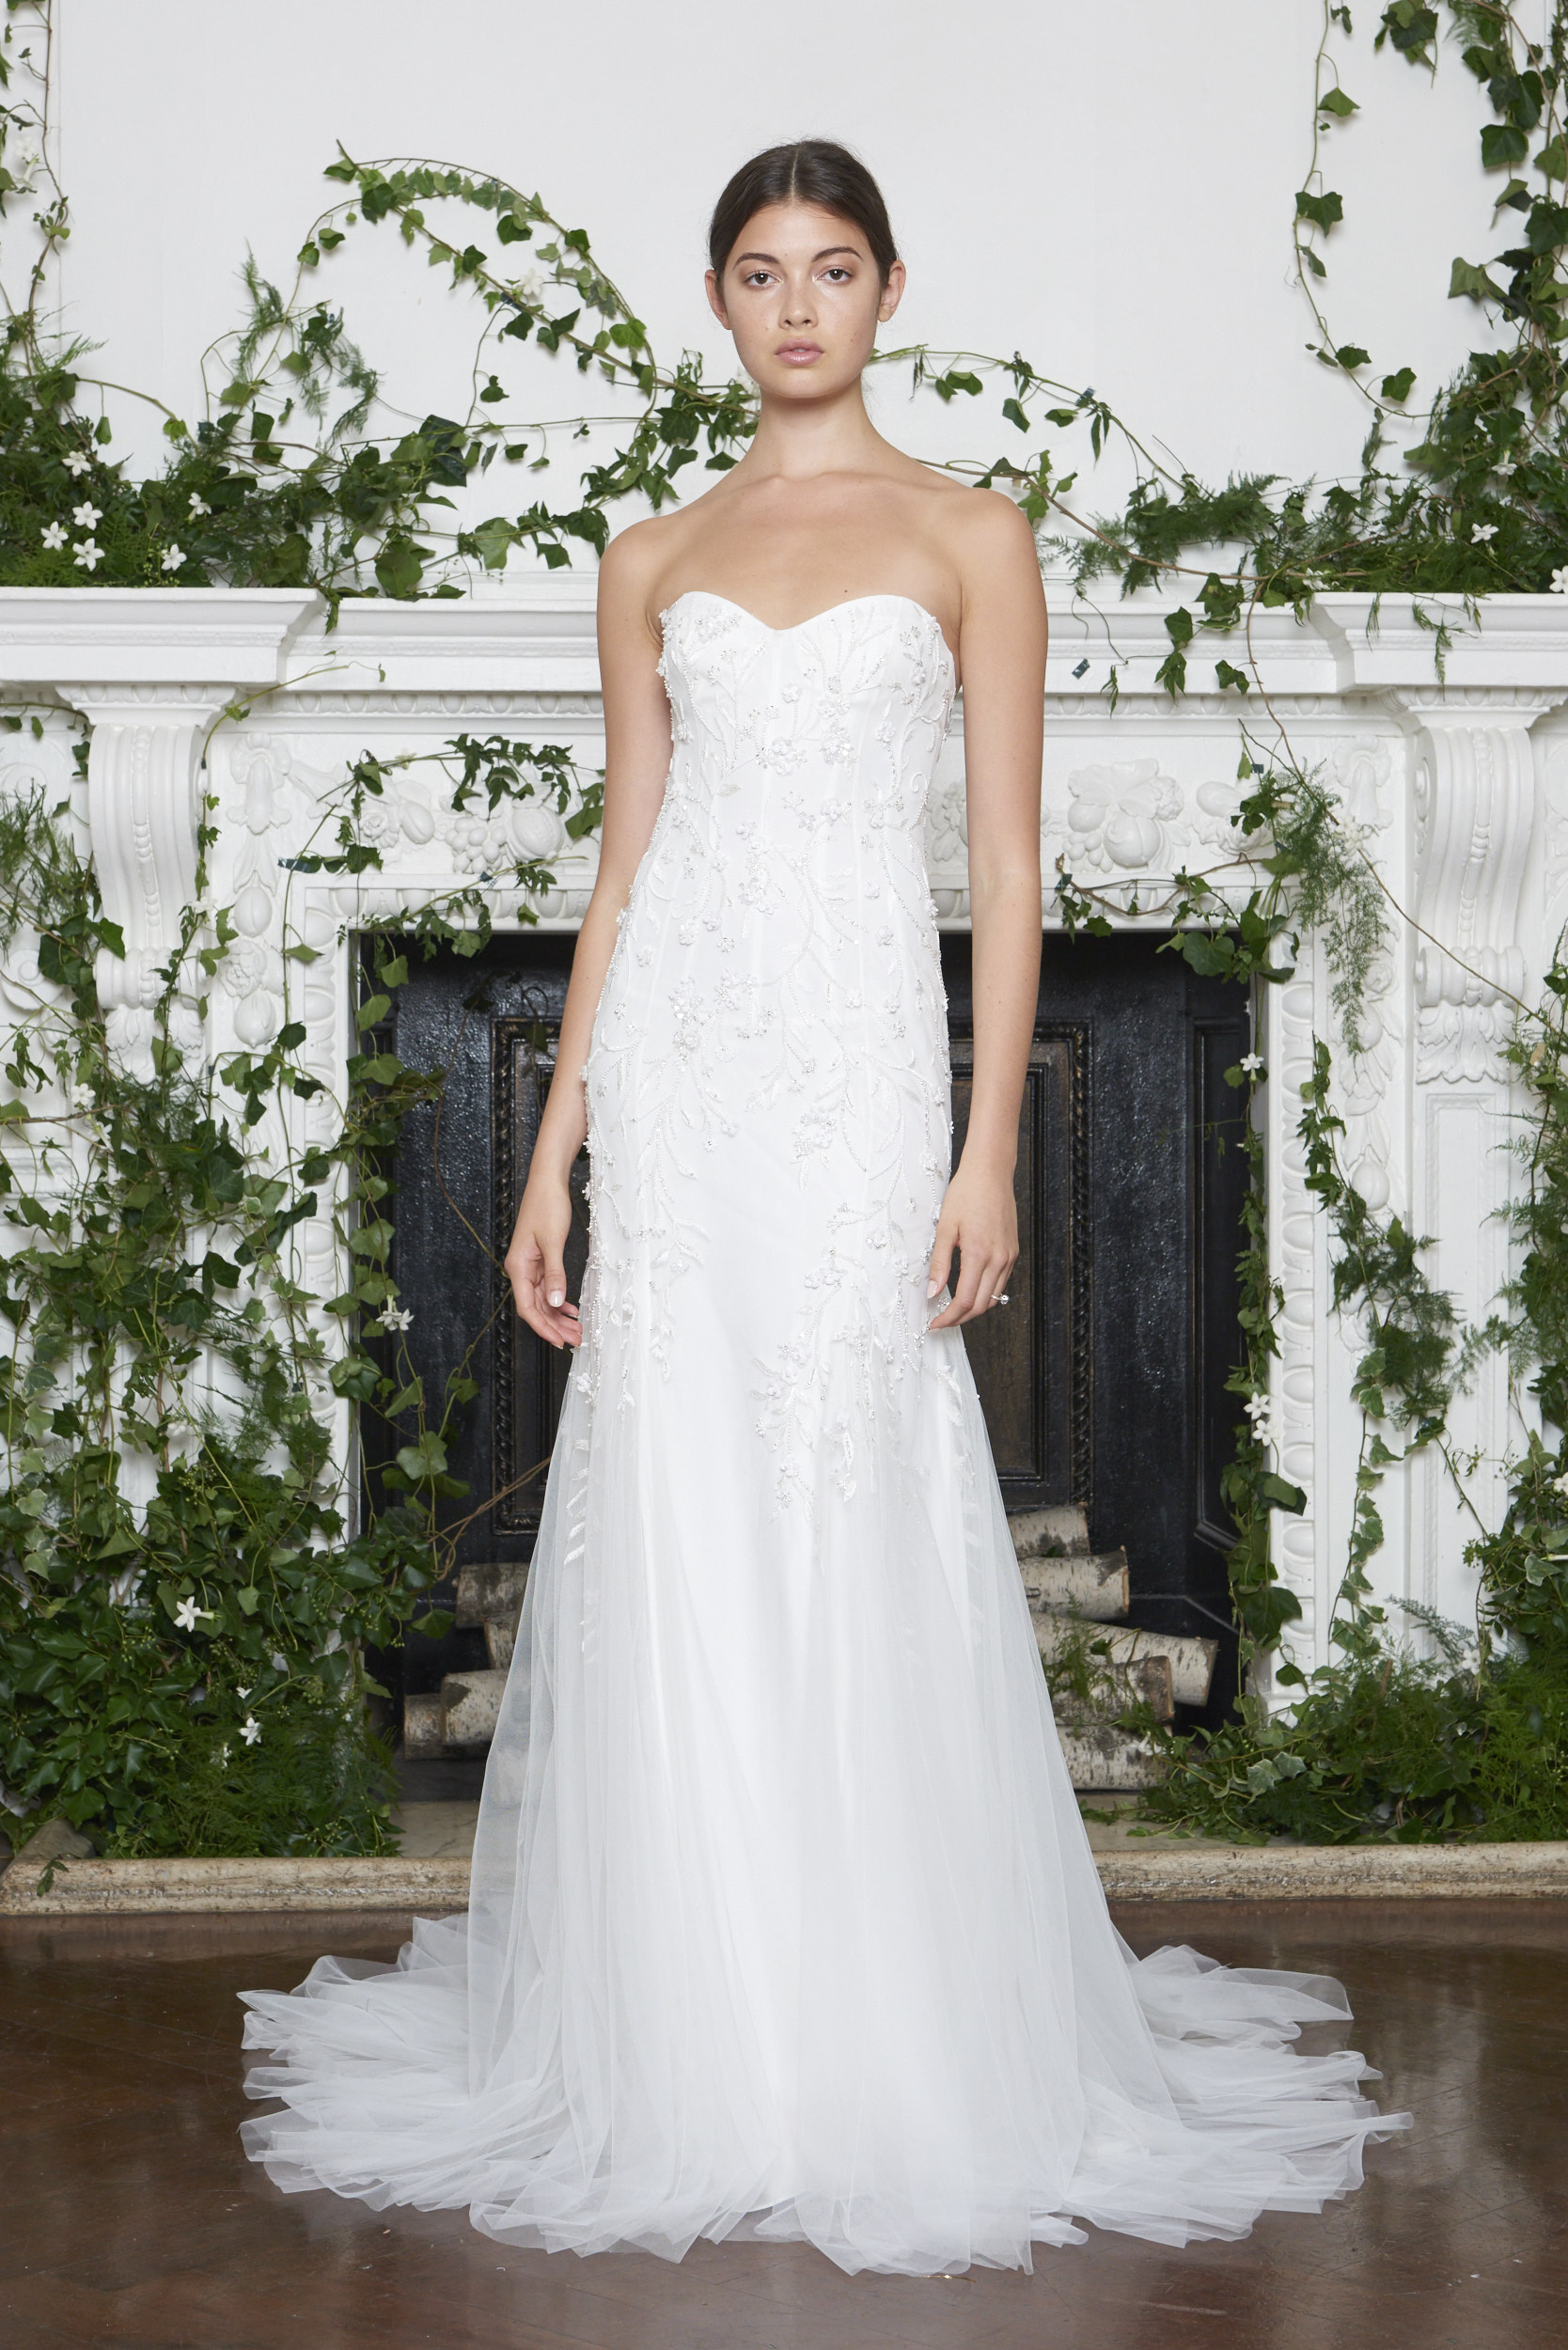 Monique Lhuillier Fall 2018 Strapless SLim Mermaid with Embroidery